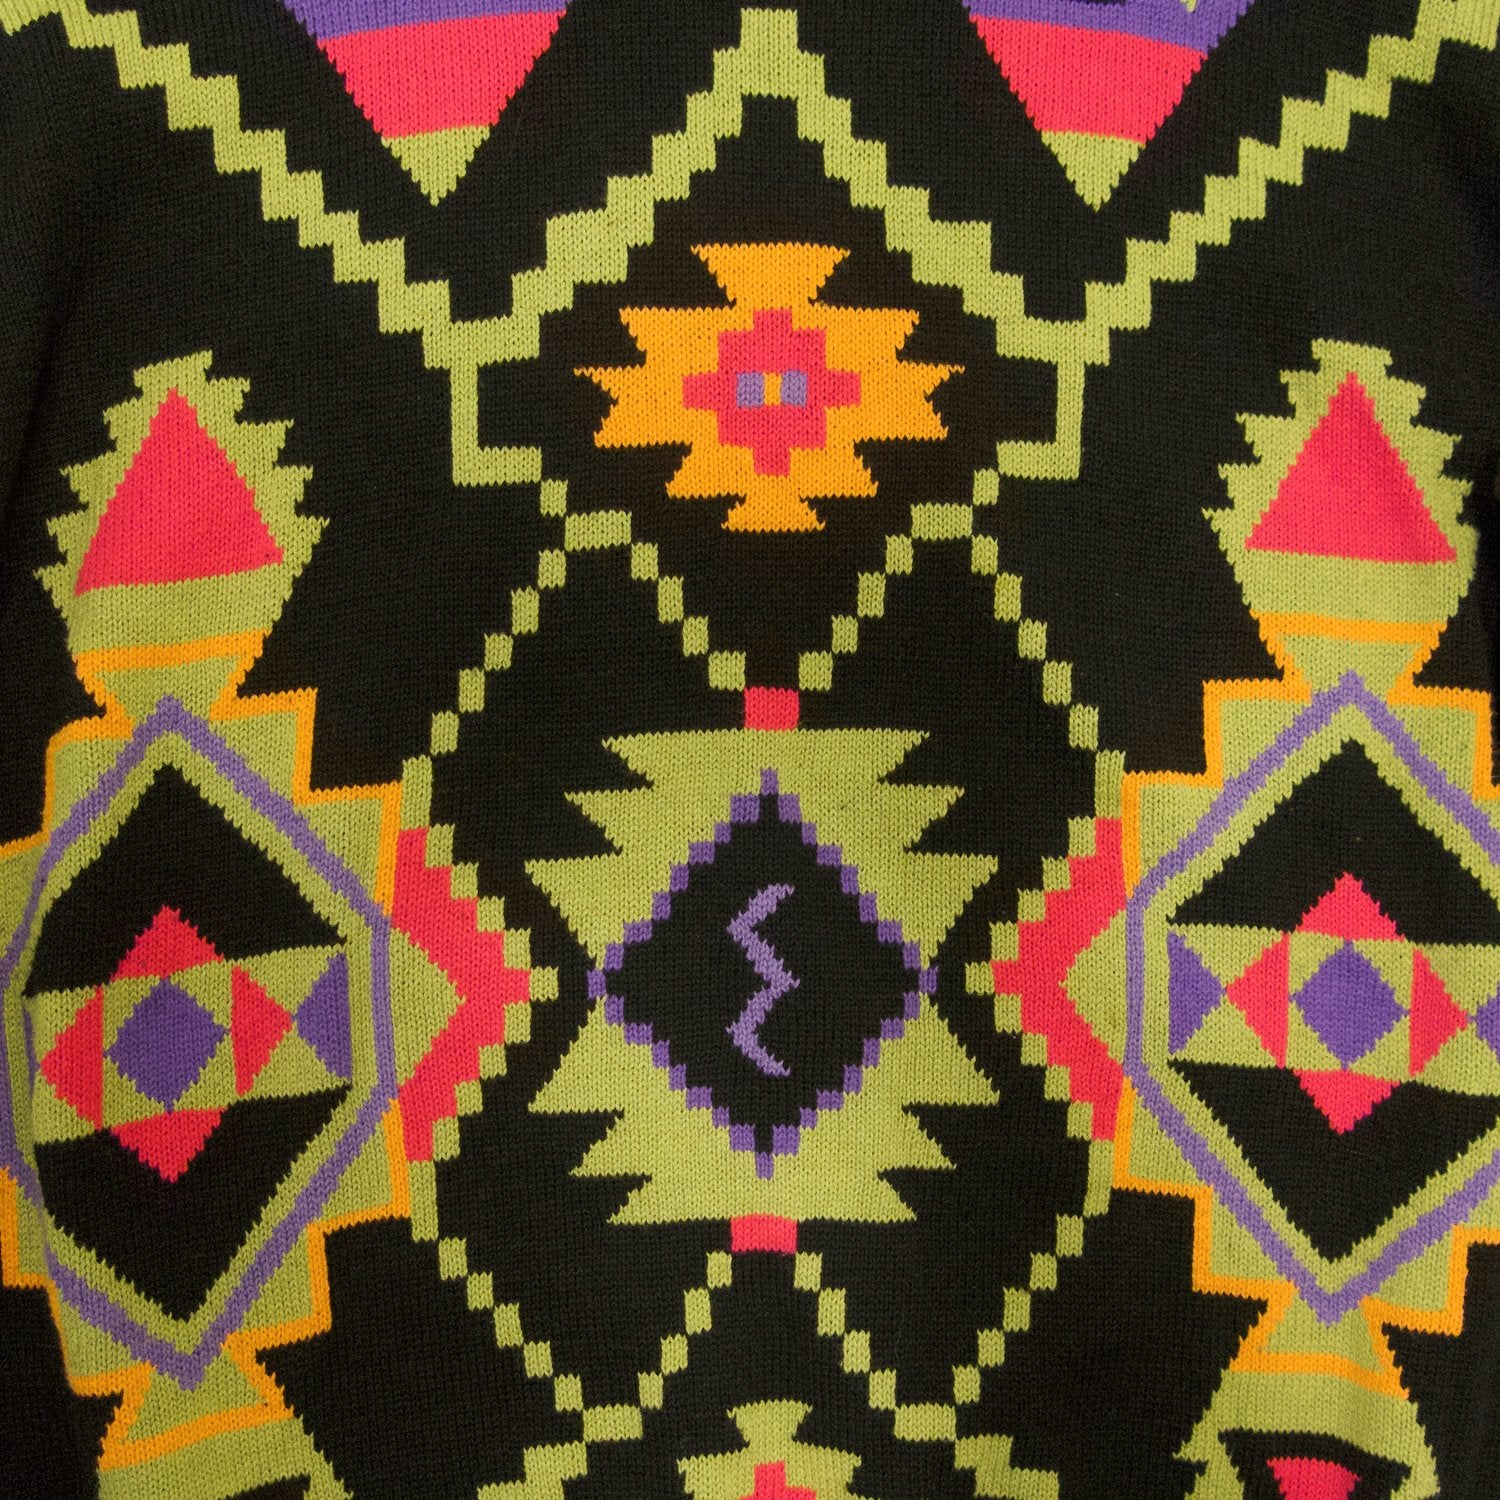 Second Room Vintage Clothing. Vintage black Esprit crew neck sweater with geometric pattern in bright purple, green, orange and pink. Ribbing at cuffs and waist, and the back of the sweater is plain black. Free North American shipping on all orders.